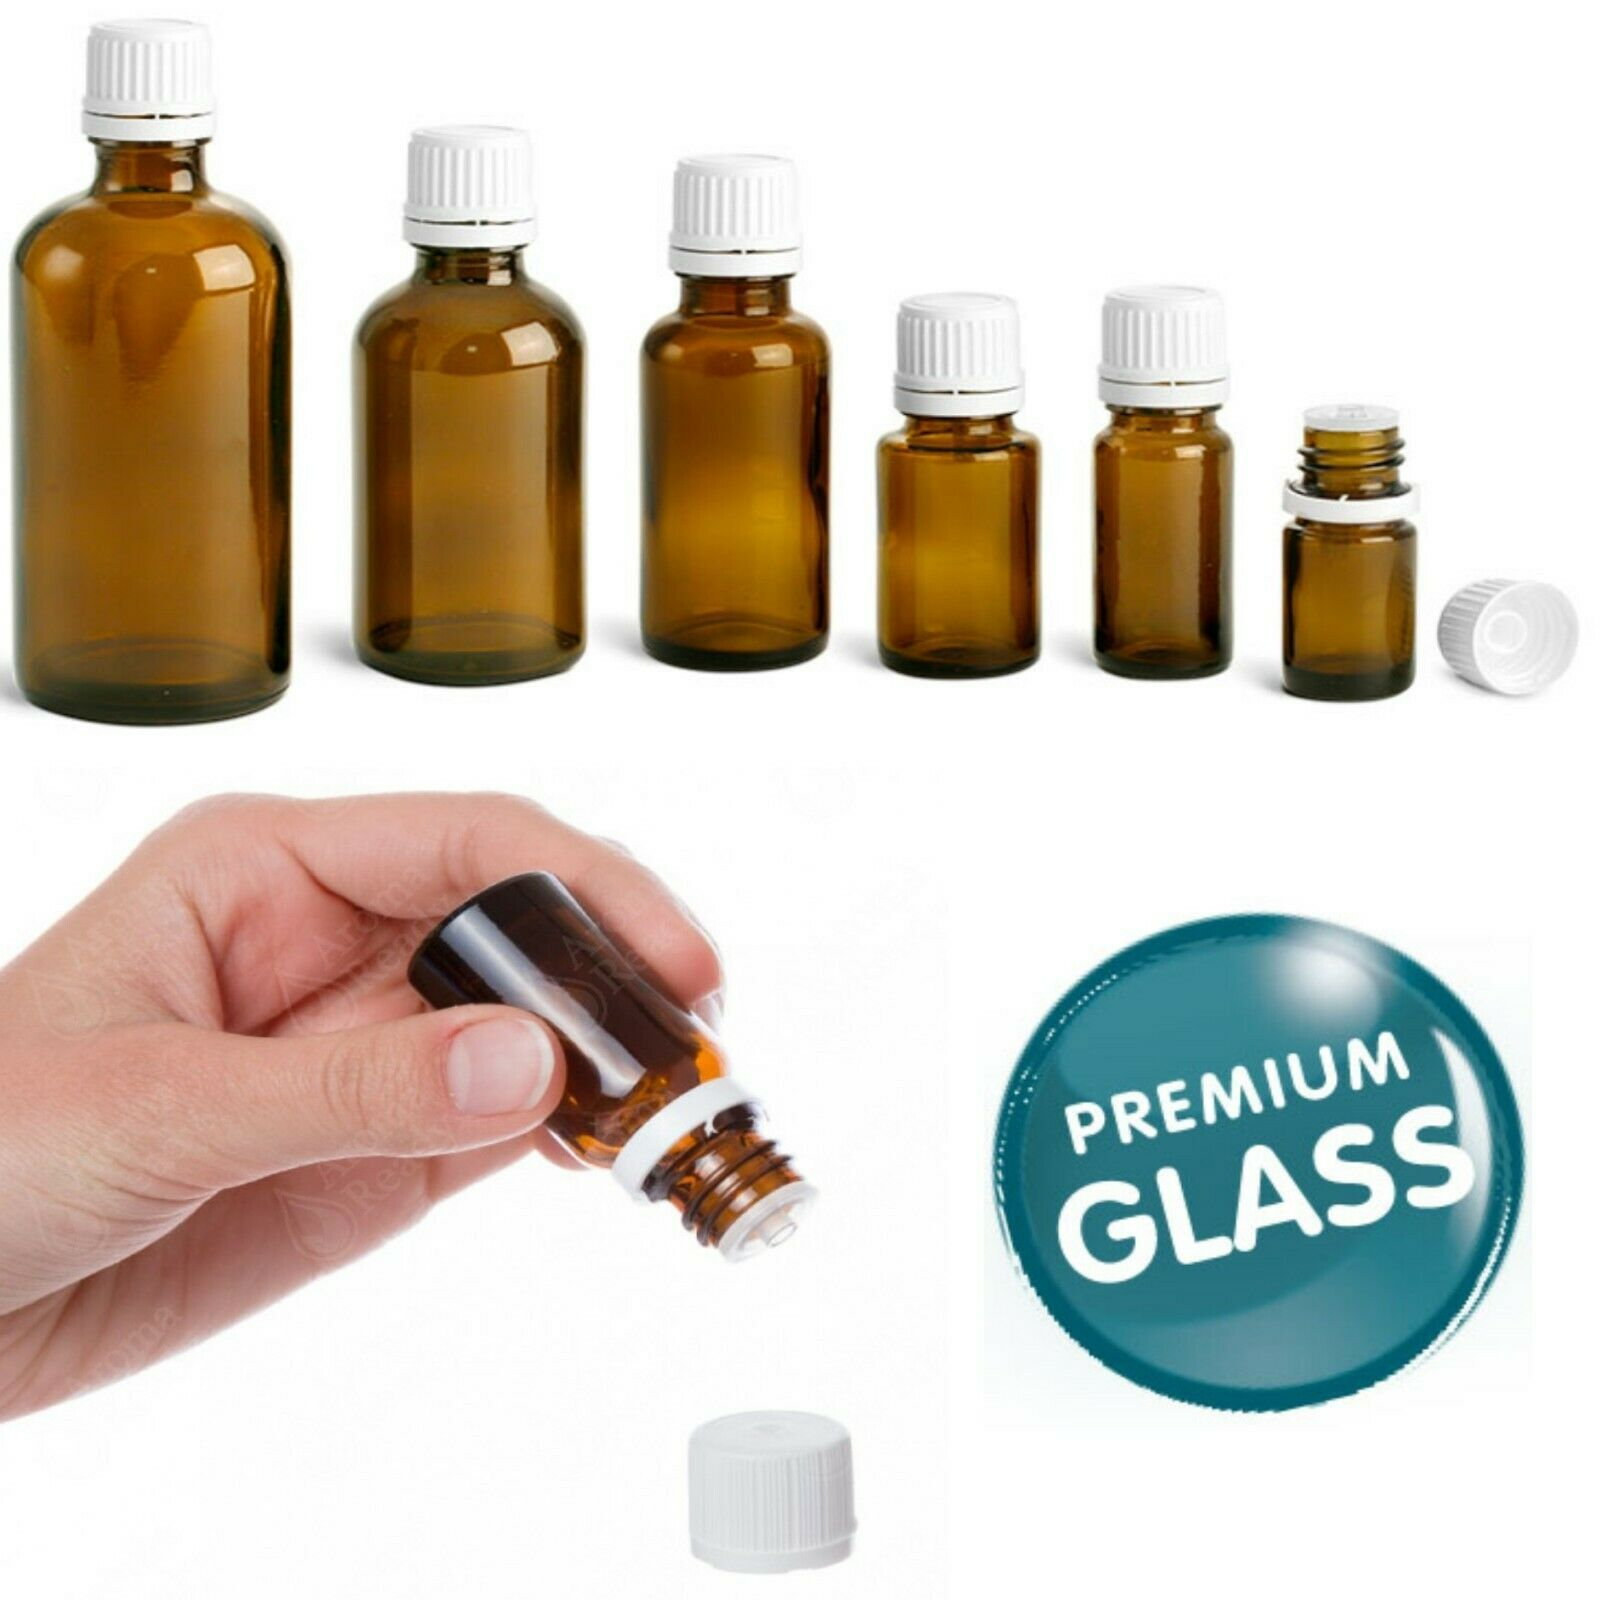 Culinaire 24 Pack Of 2 oz Blue Glass Bottles with Spray Tops and Gold Glass Pen